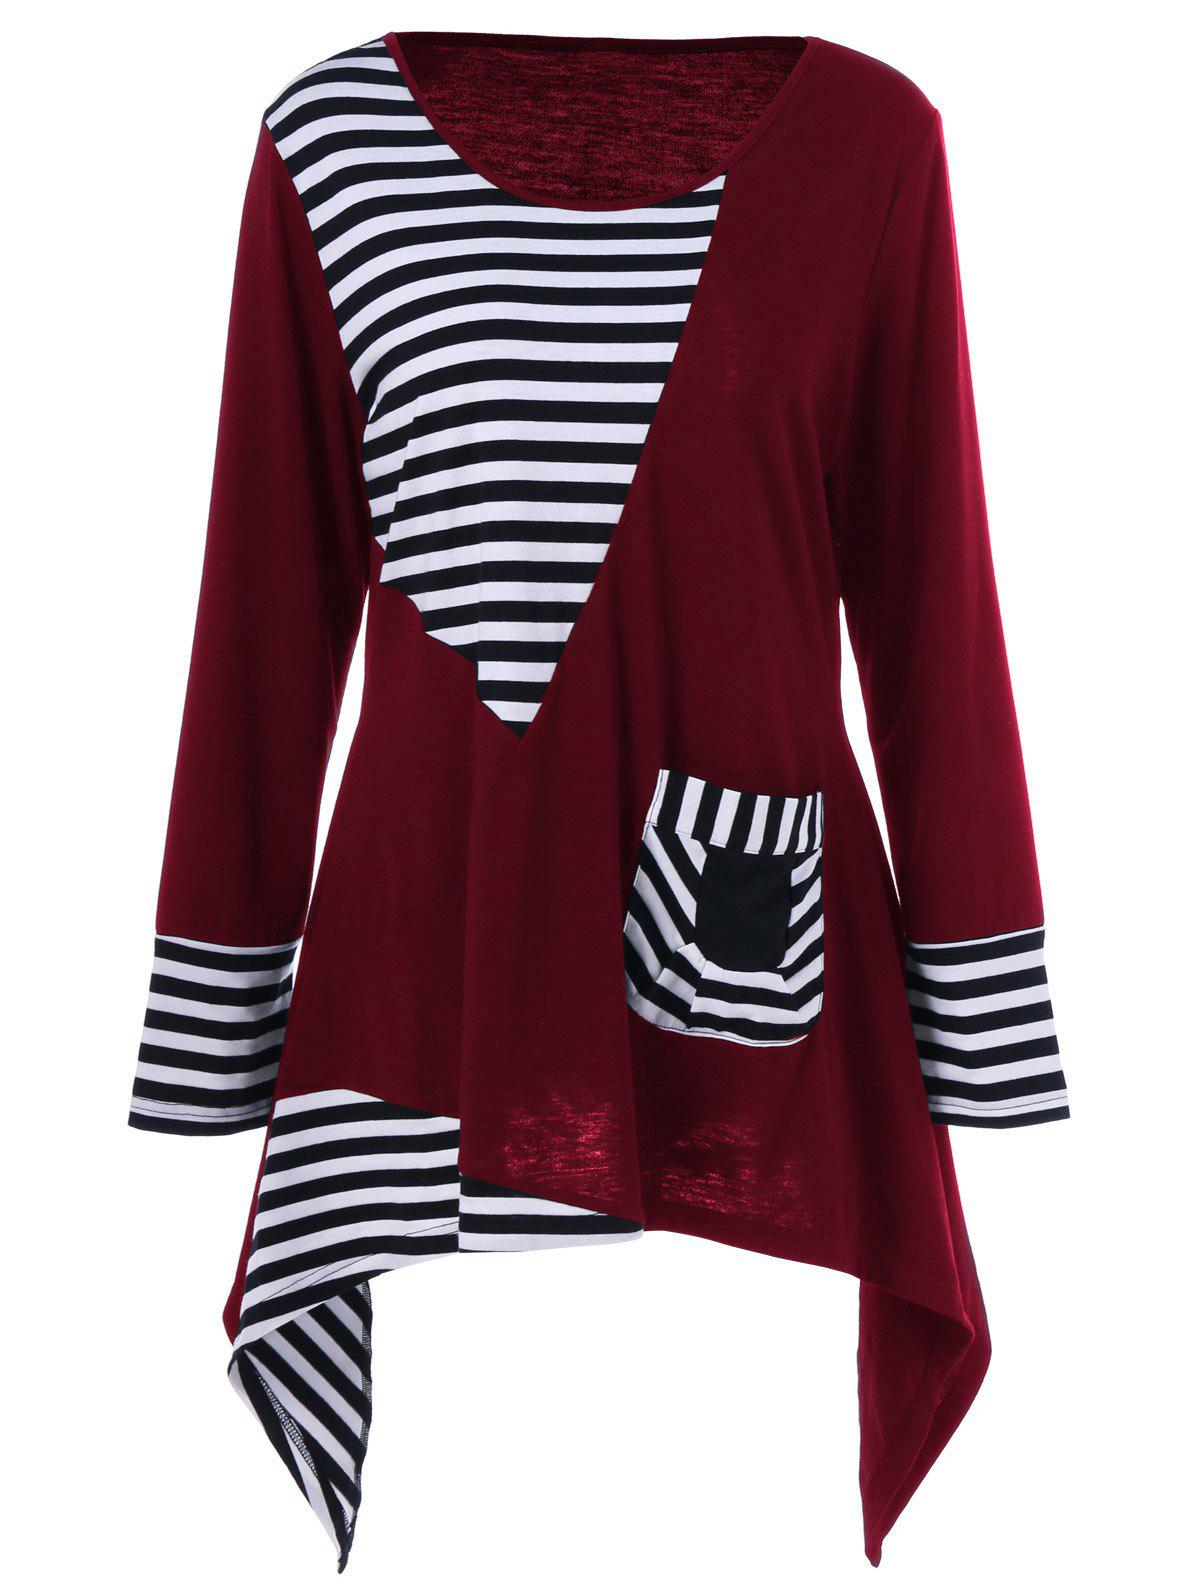 Plus Size Asymmetric Striped Tunic T-Shirt - RED XL